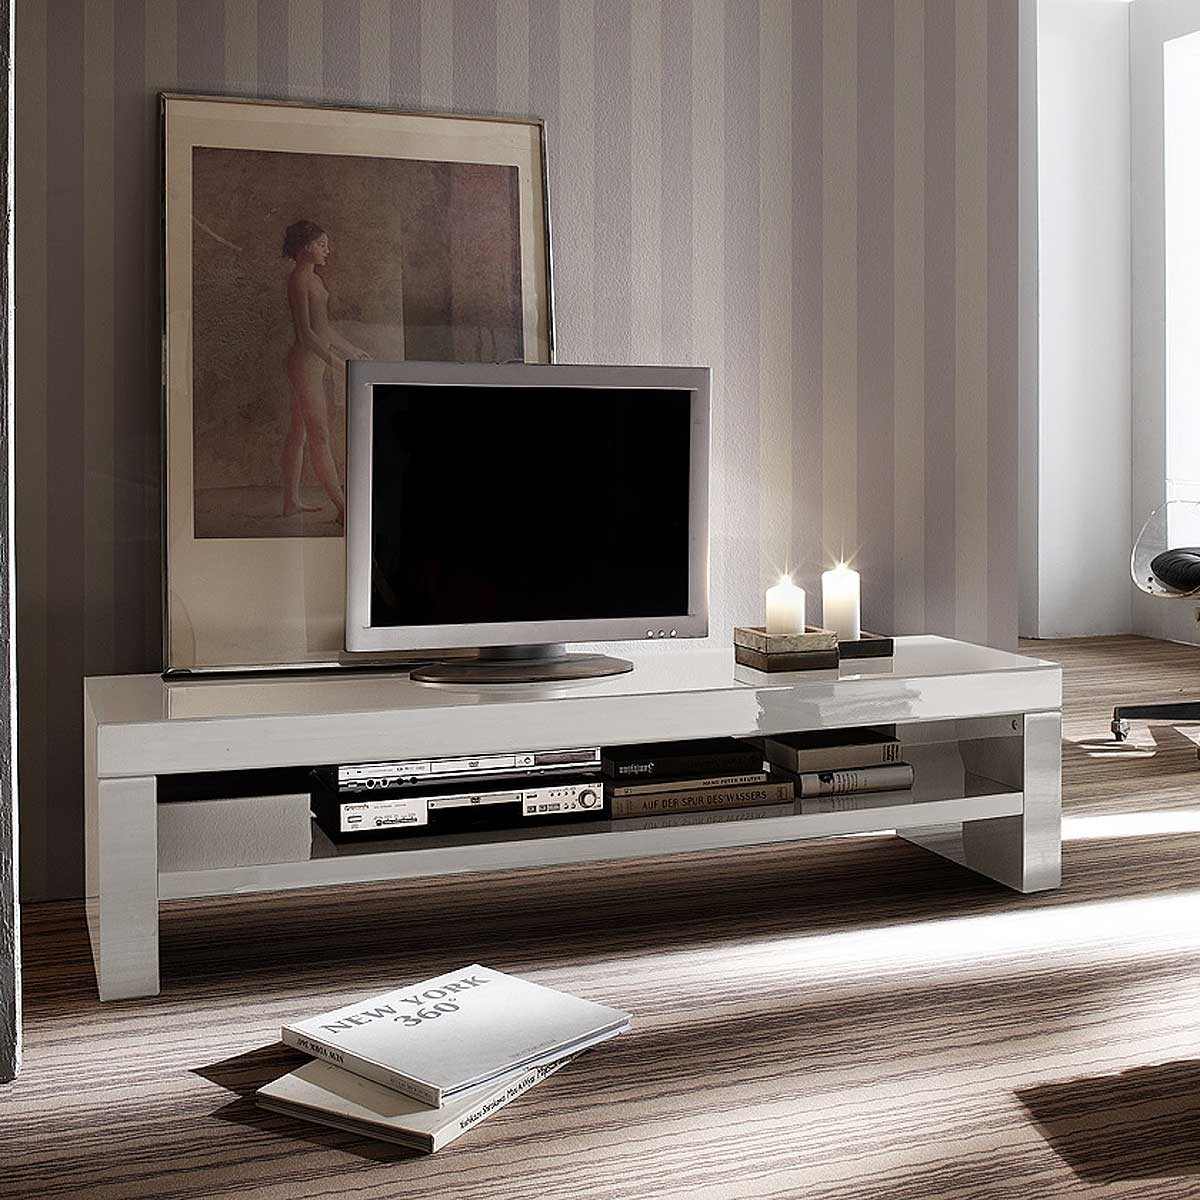 lowboard tv lowboard tv unterteil tv bank modern in hochglanz wei. Black Bedroom Furniture Sets. Home Design Ideas